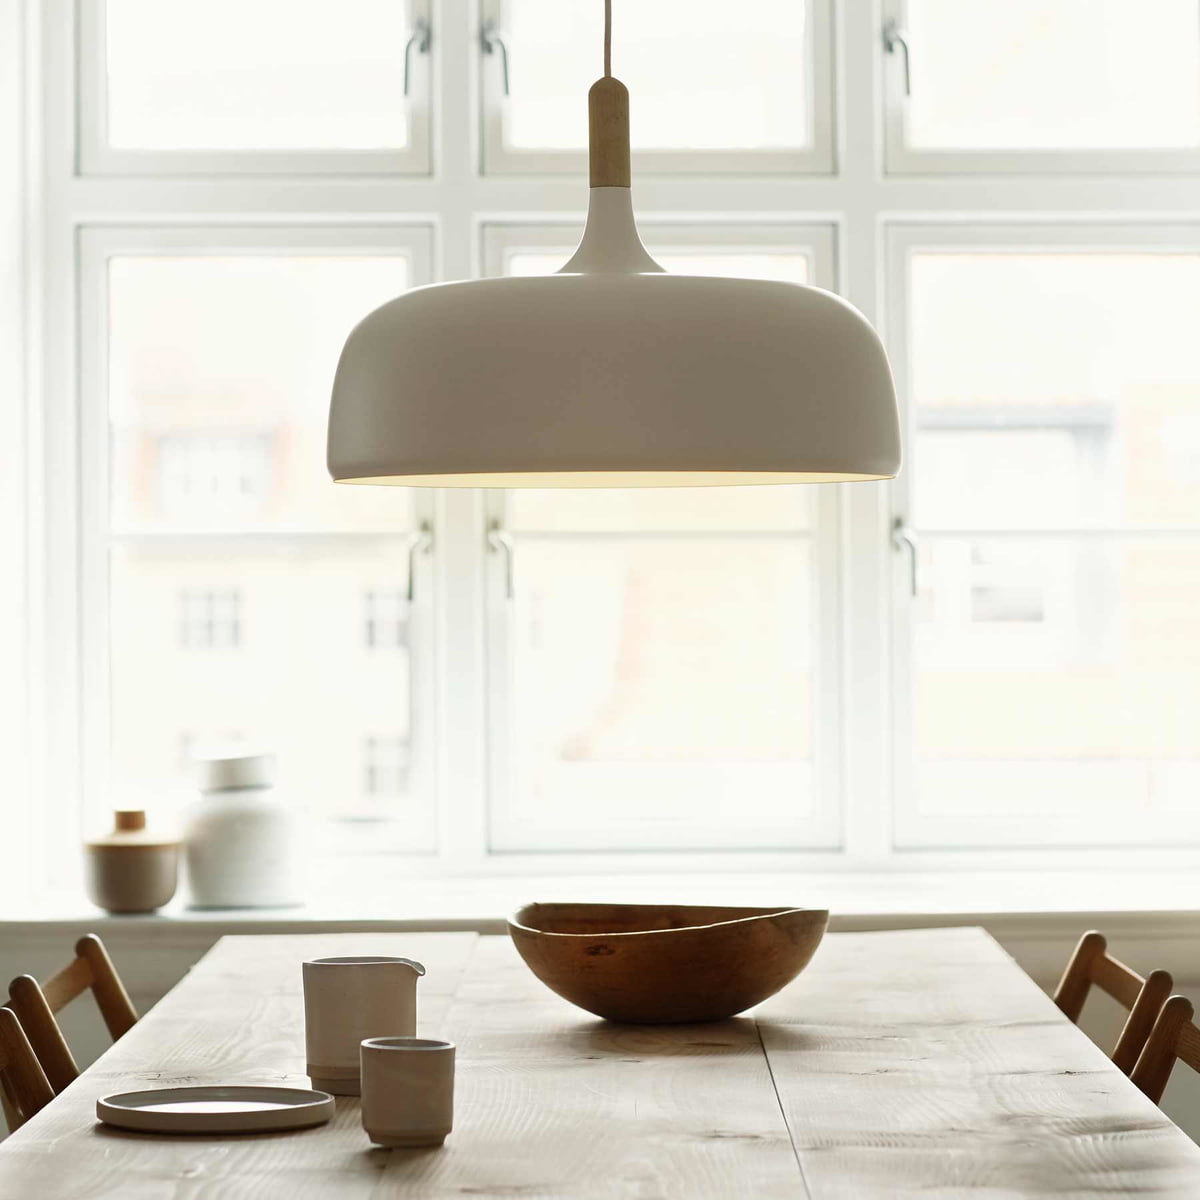 Acorn Lamp By Northern Lighting In The